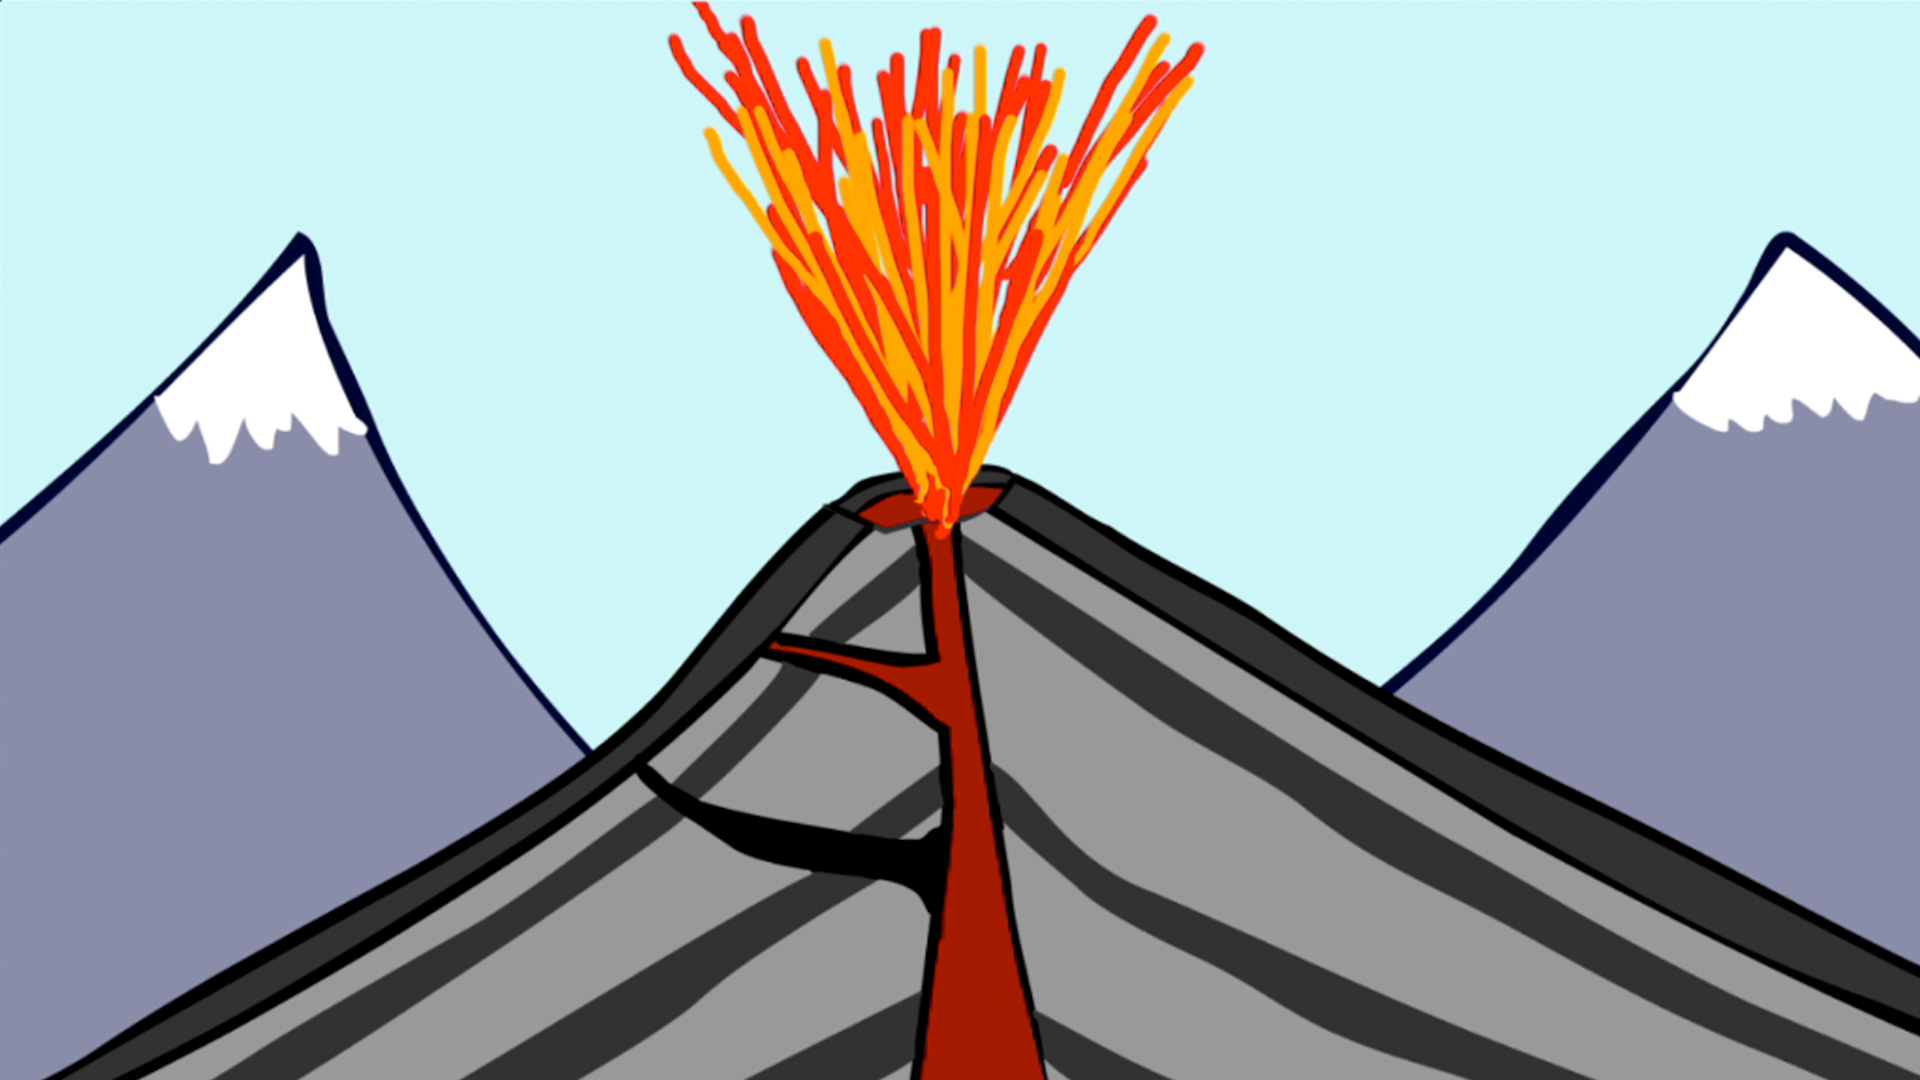 Anatomy Of A Volcano Worksheet - Karibunicollies